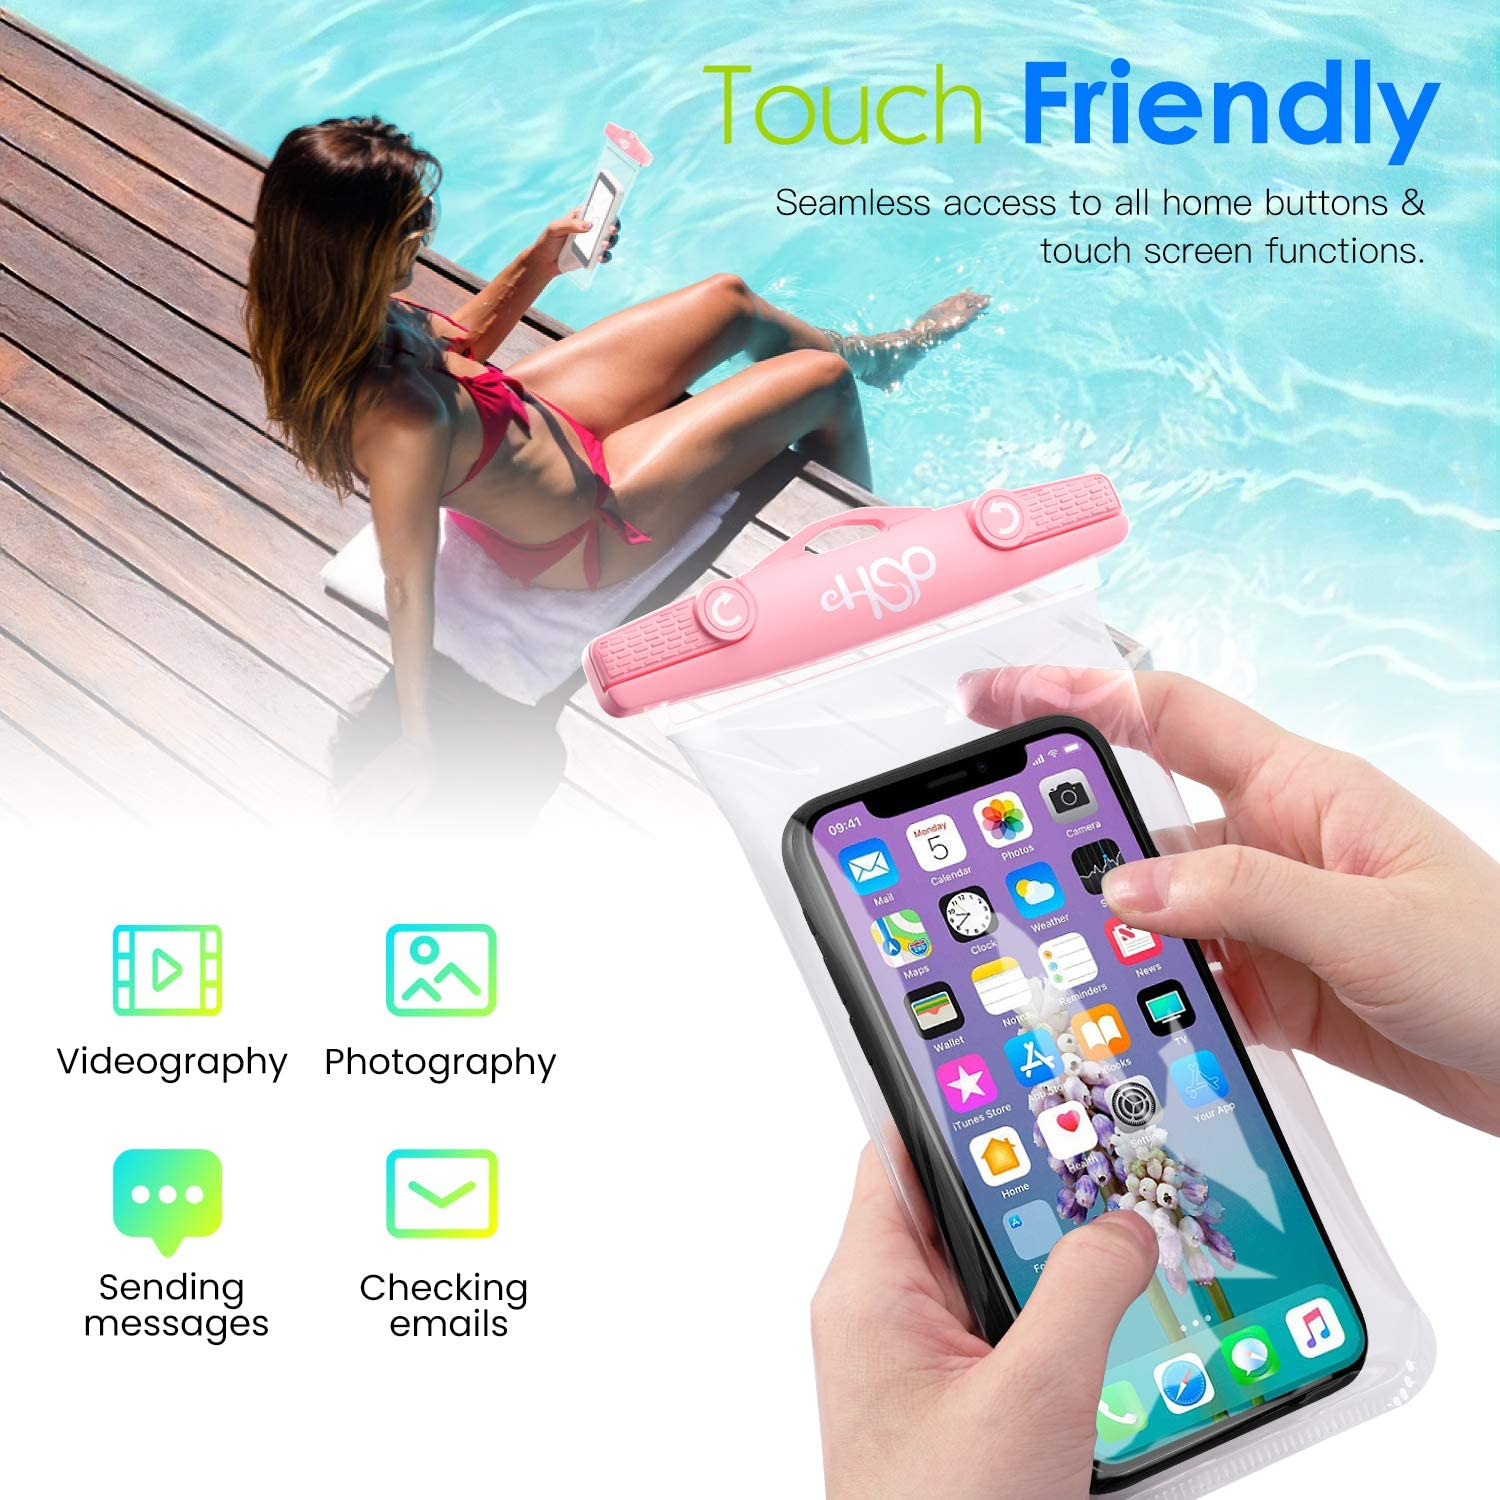 HeySplash IPX8 Waterproof Phone Pouch, 2-Pack Underwater Clear Cellphone Case Dry Bag with Lanyard for Beach SUP or Bathing, Compatible with New iPhone SE 2020 iPhone 11/11 Pro/11 Pro Max/X/Xs/Xs Max